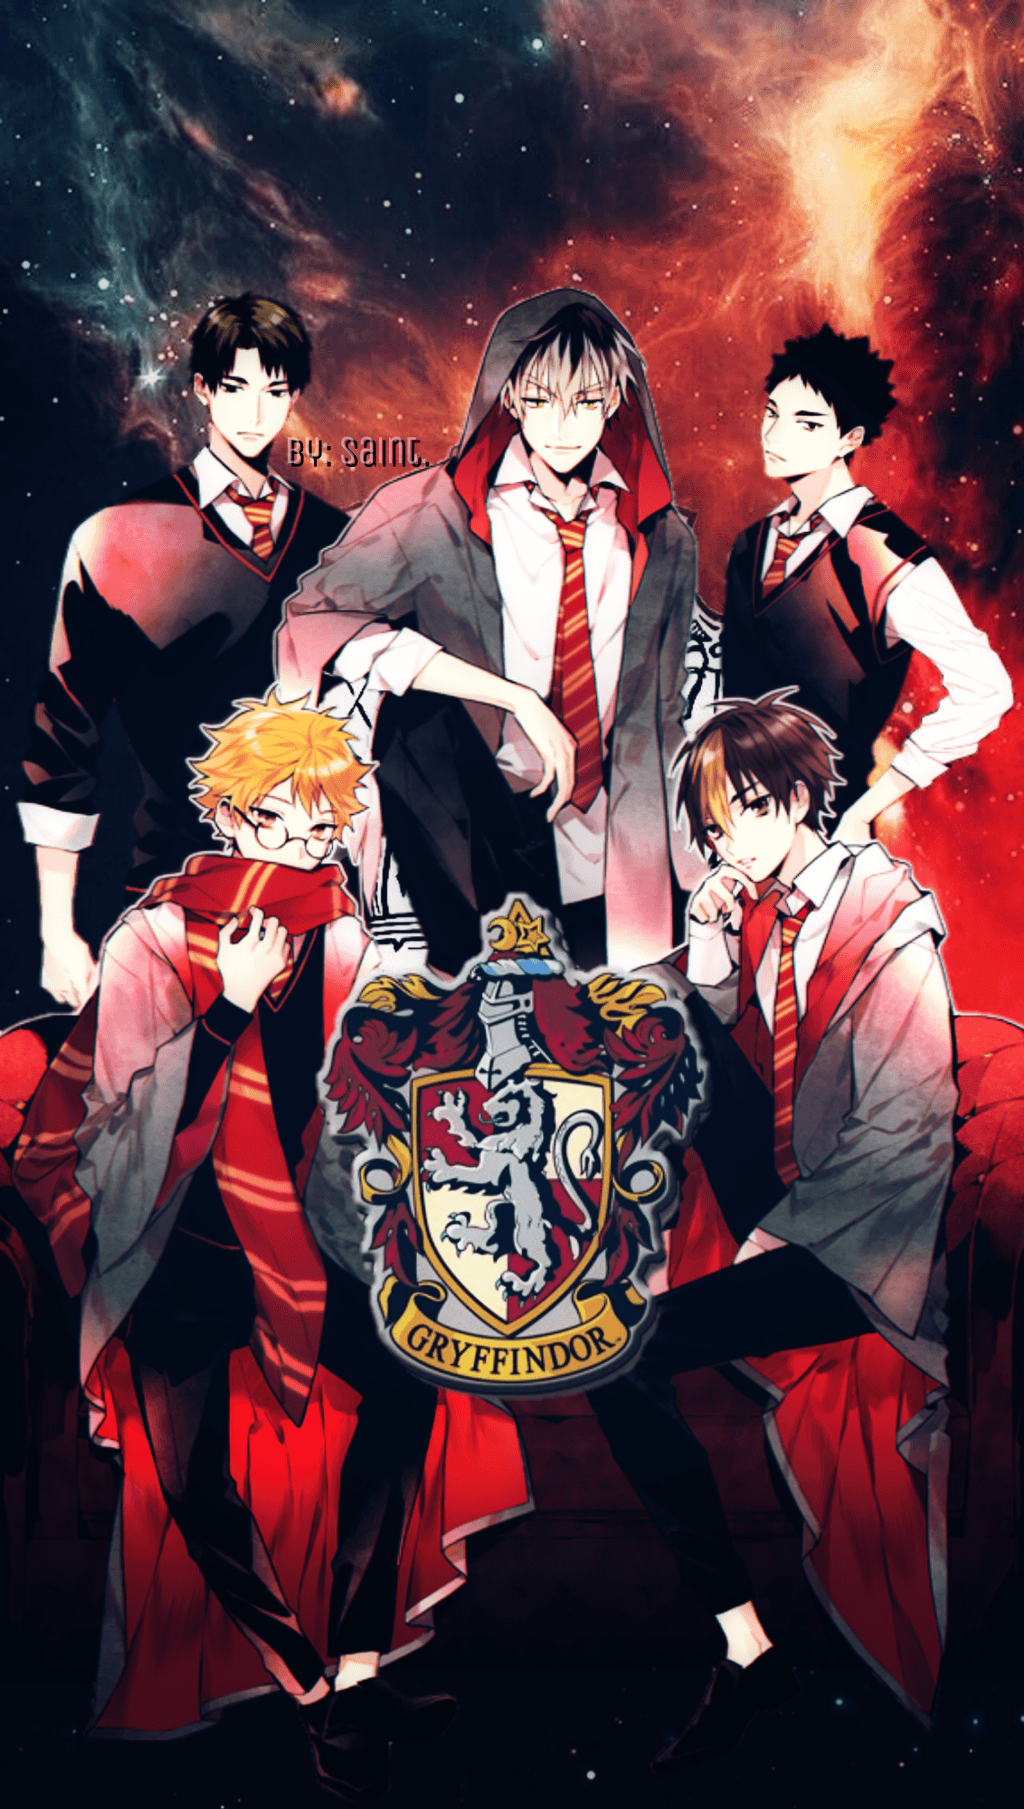 Harry Potter Manga Wallpapers On Wallpaperdog